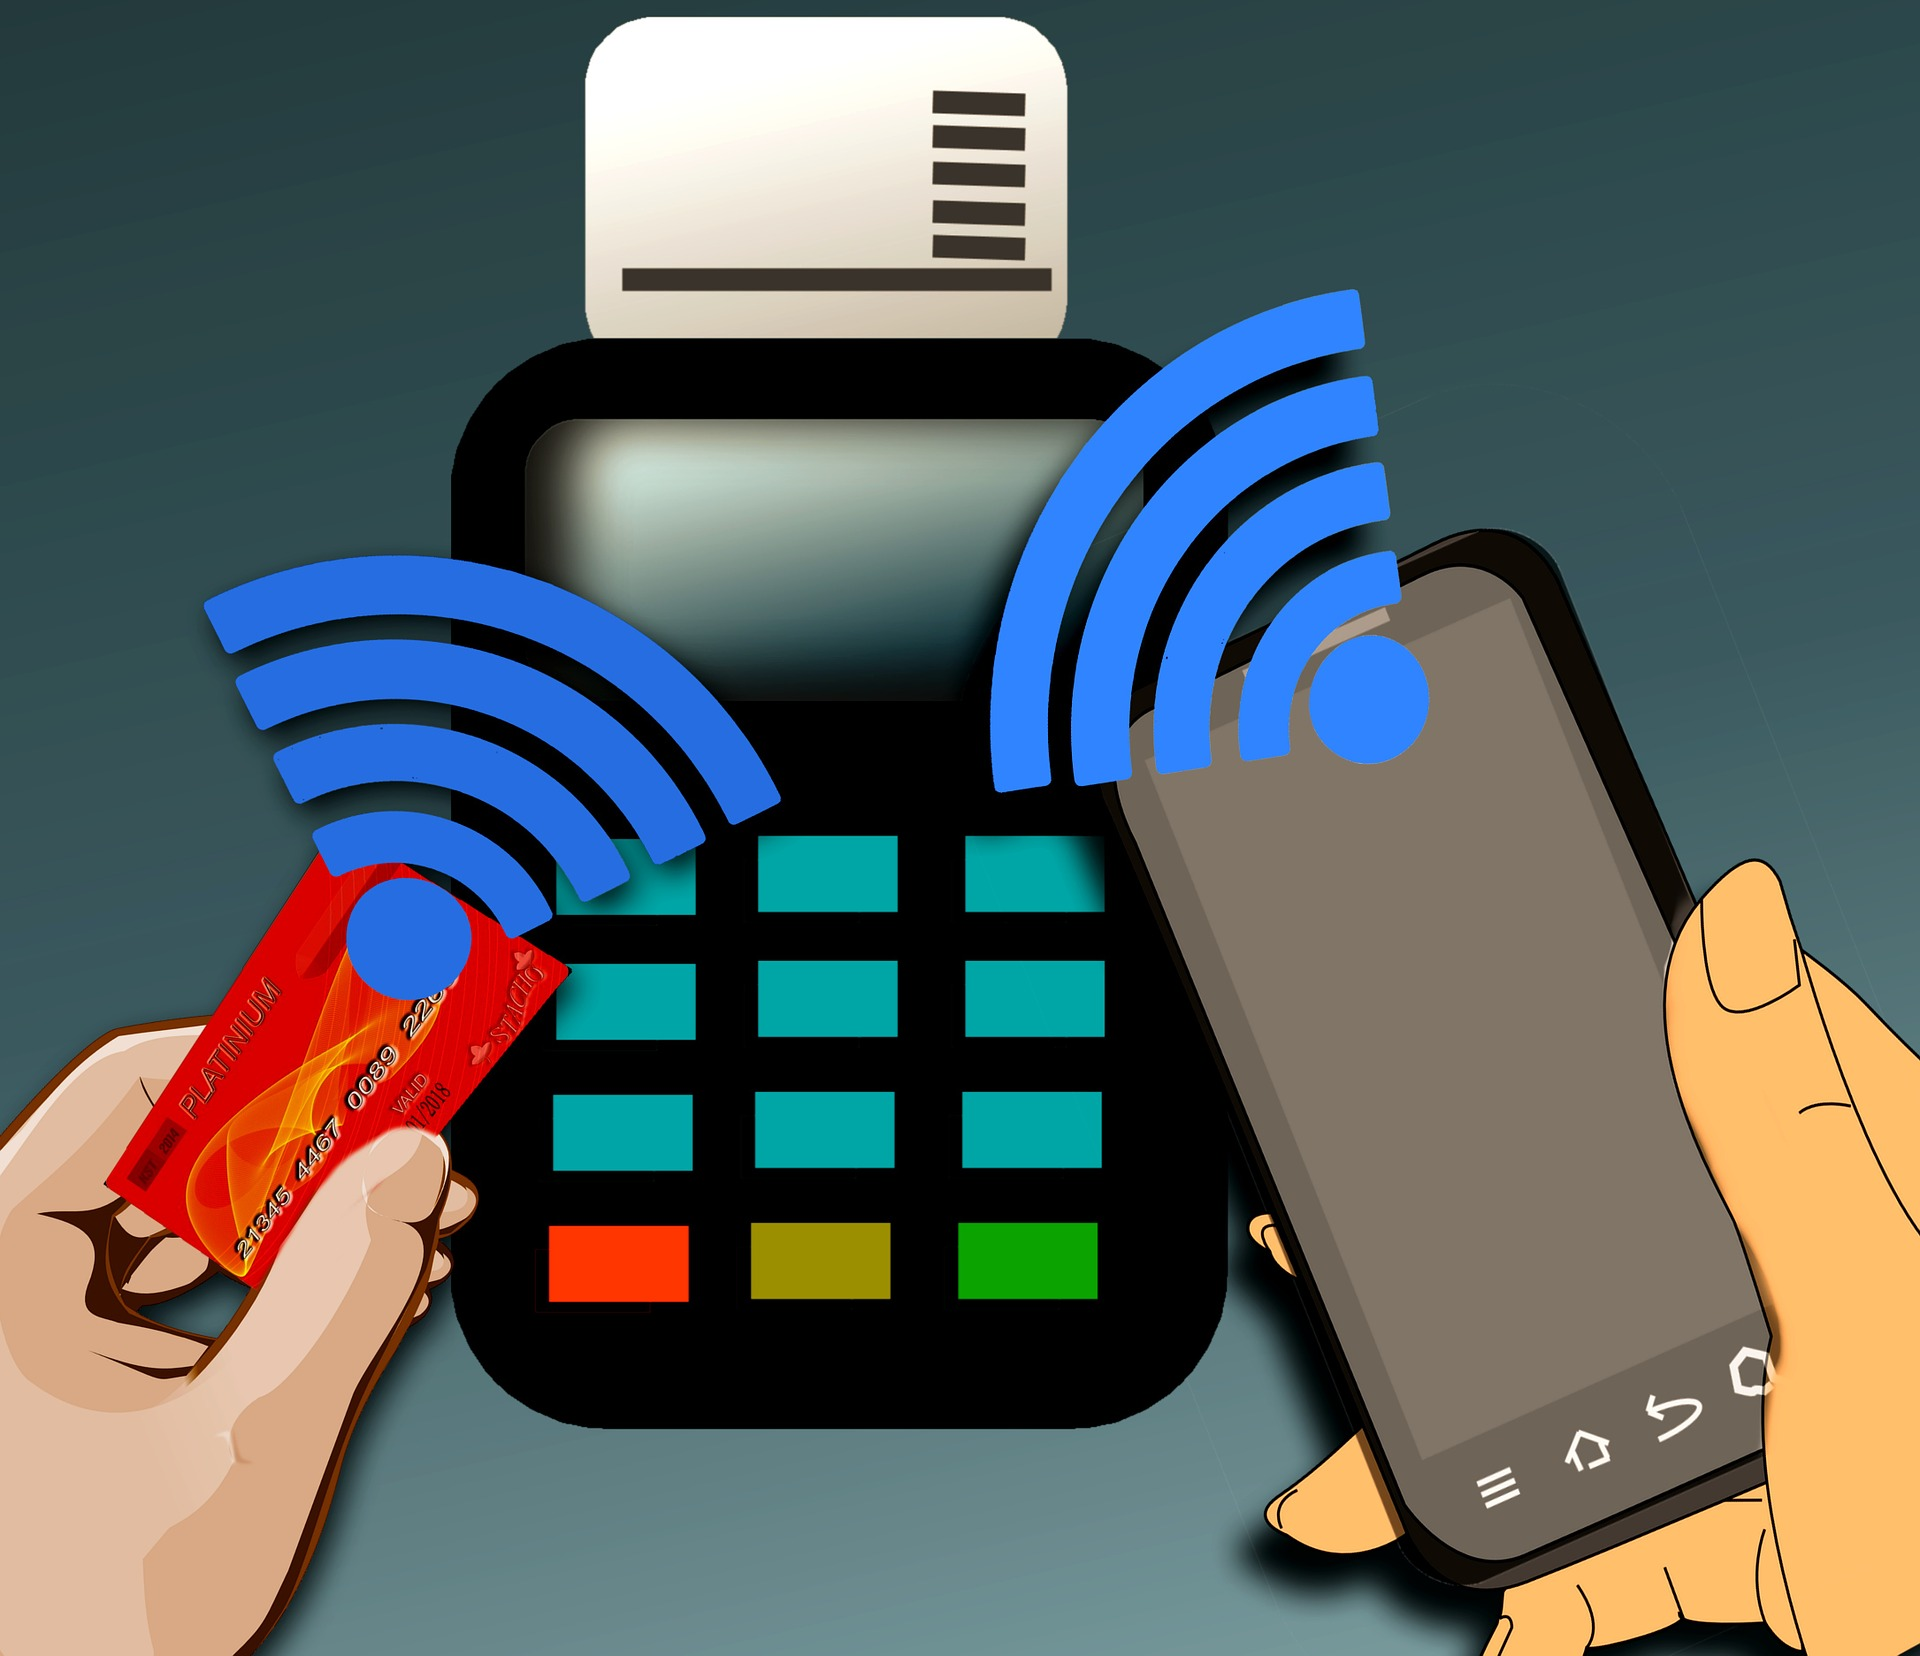 payment-systems-1169825_1920 (2).jpg